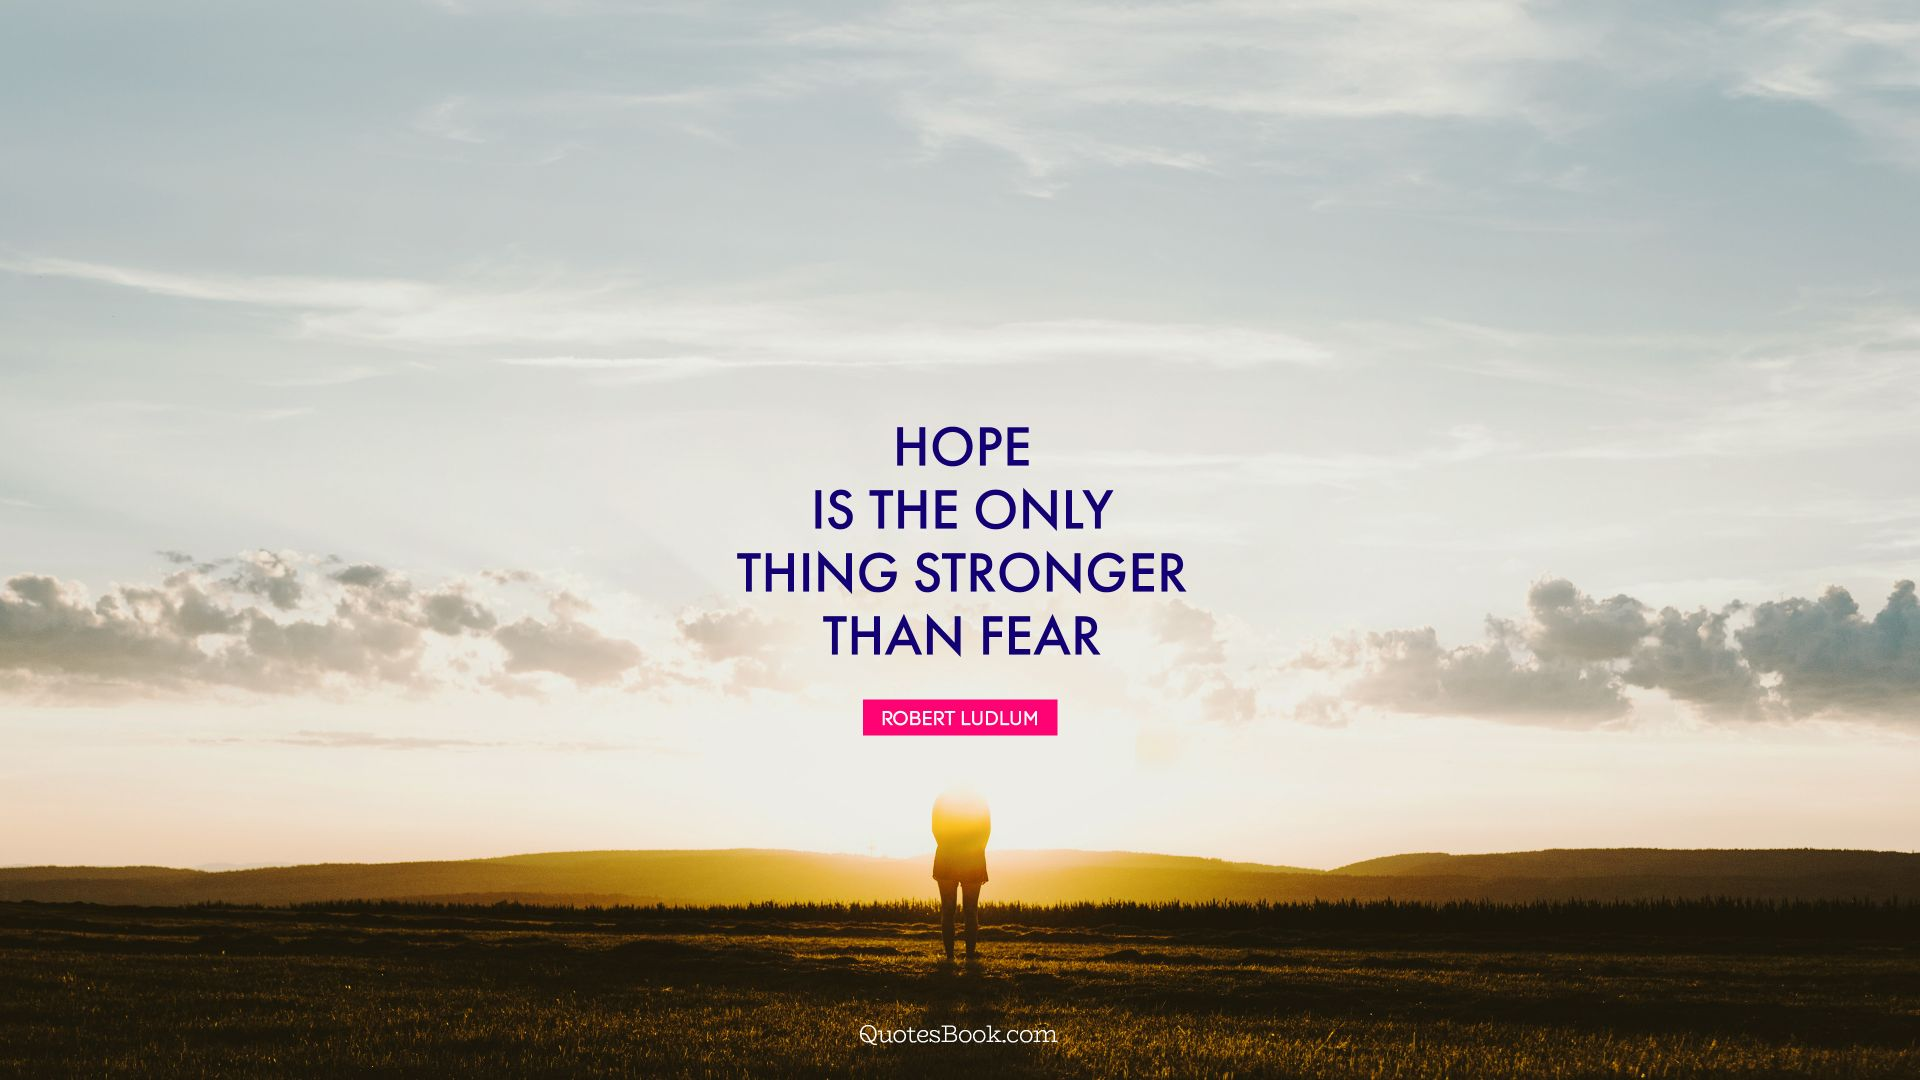 Hope is the only thing stronger than fear. - Quote by Robert Ludlum